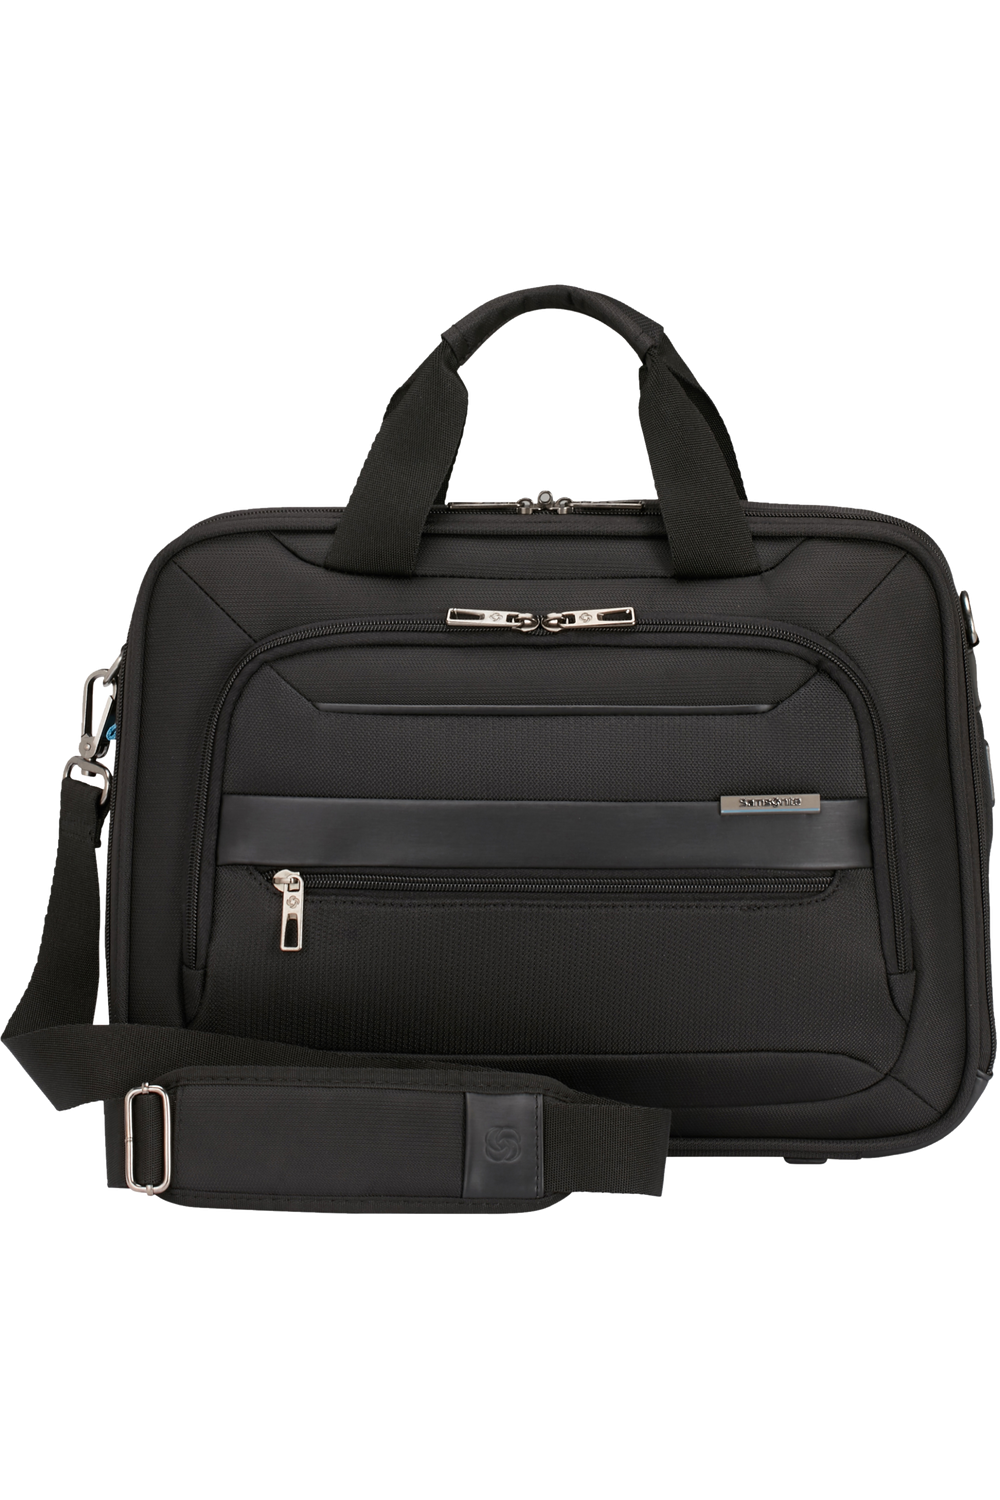 Samsonite Vectura Evo Torba 14,1 Black